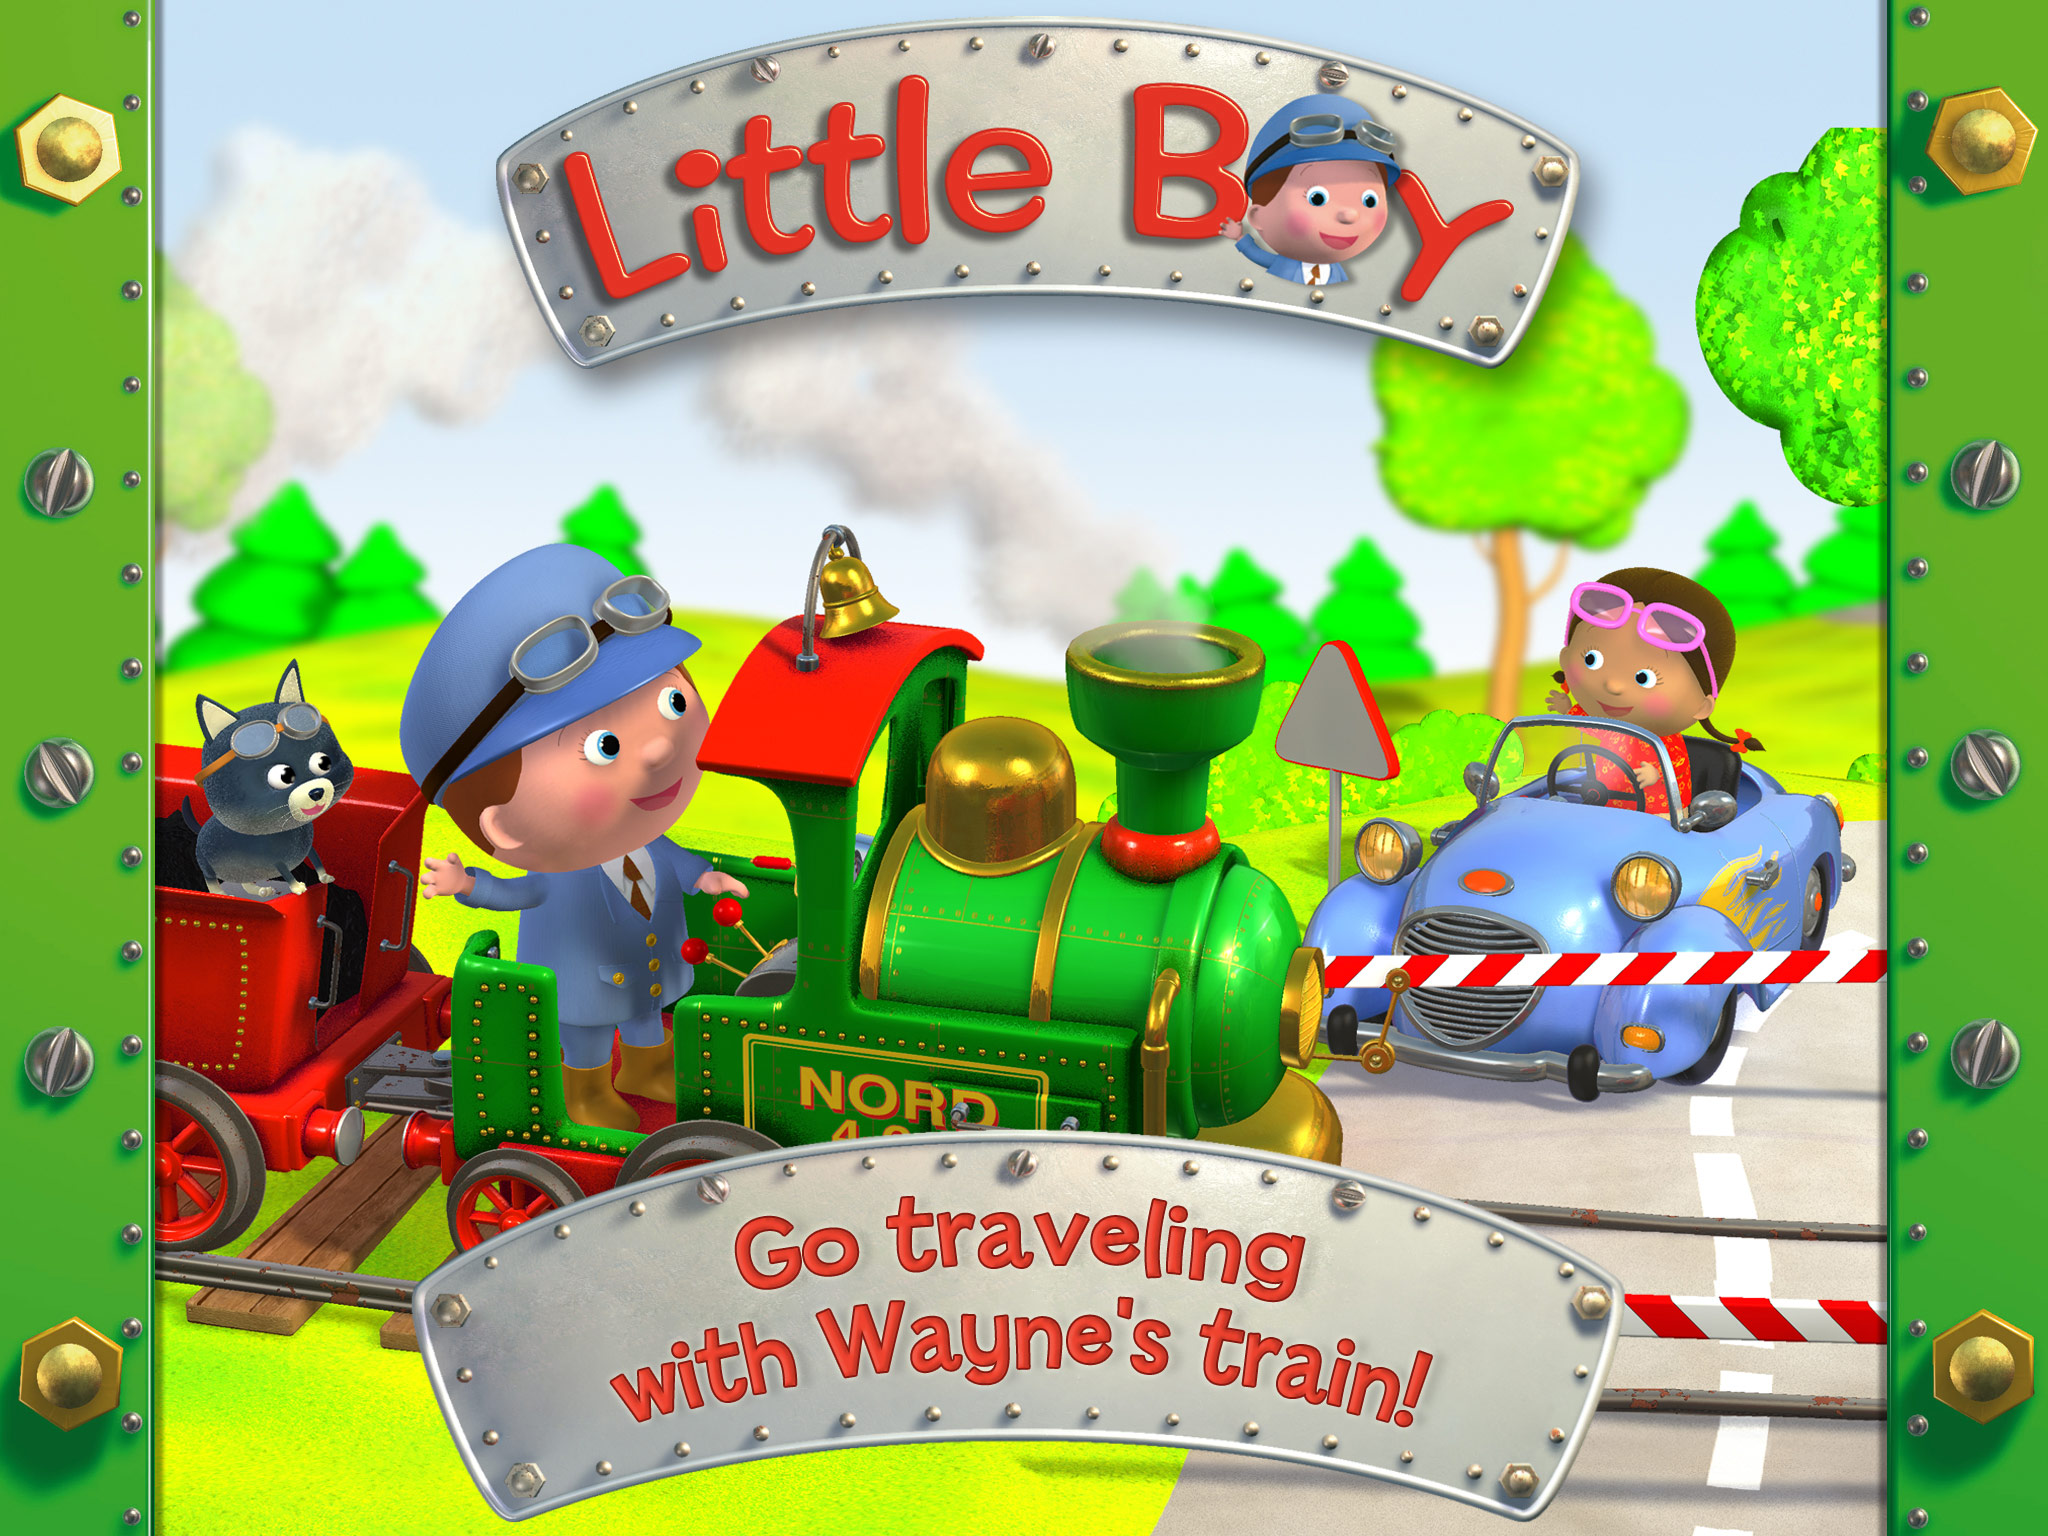 Little Boy: Wayne's Train screen shot